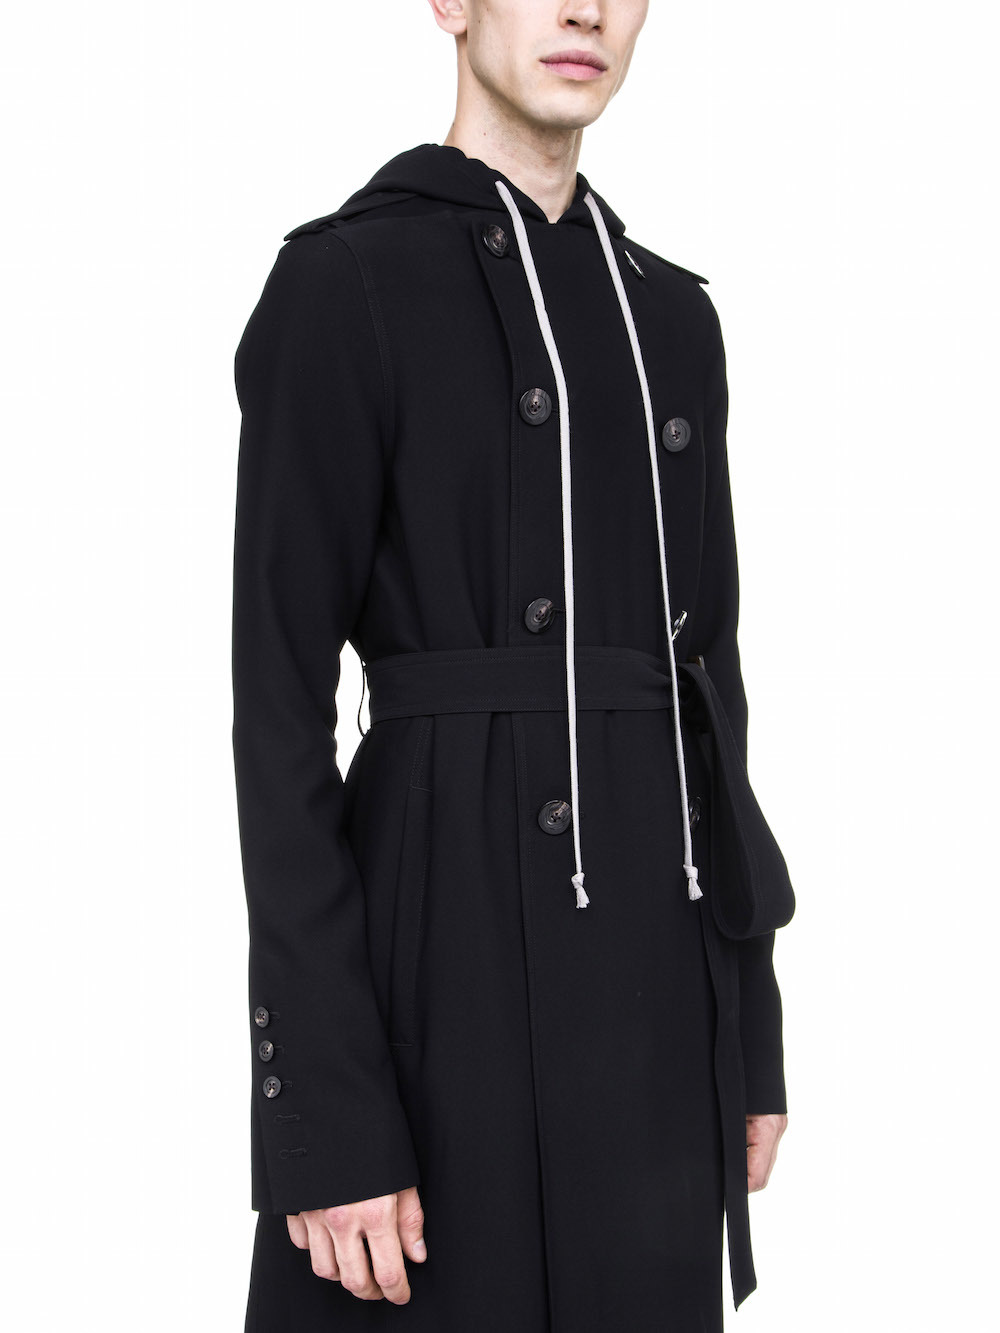 RICK OWENS OFF-THE-RUNWAY SOFT TRENCH IN BLACK